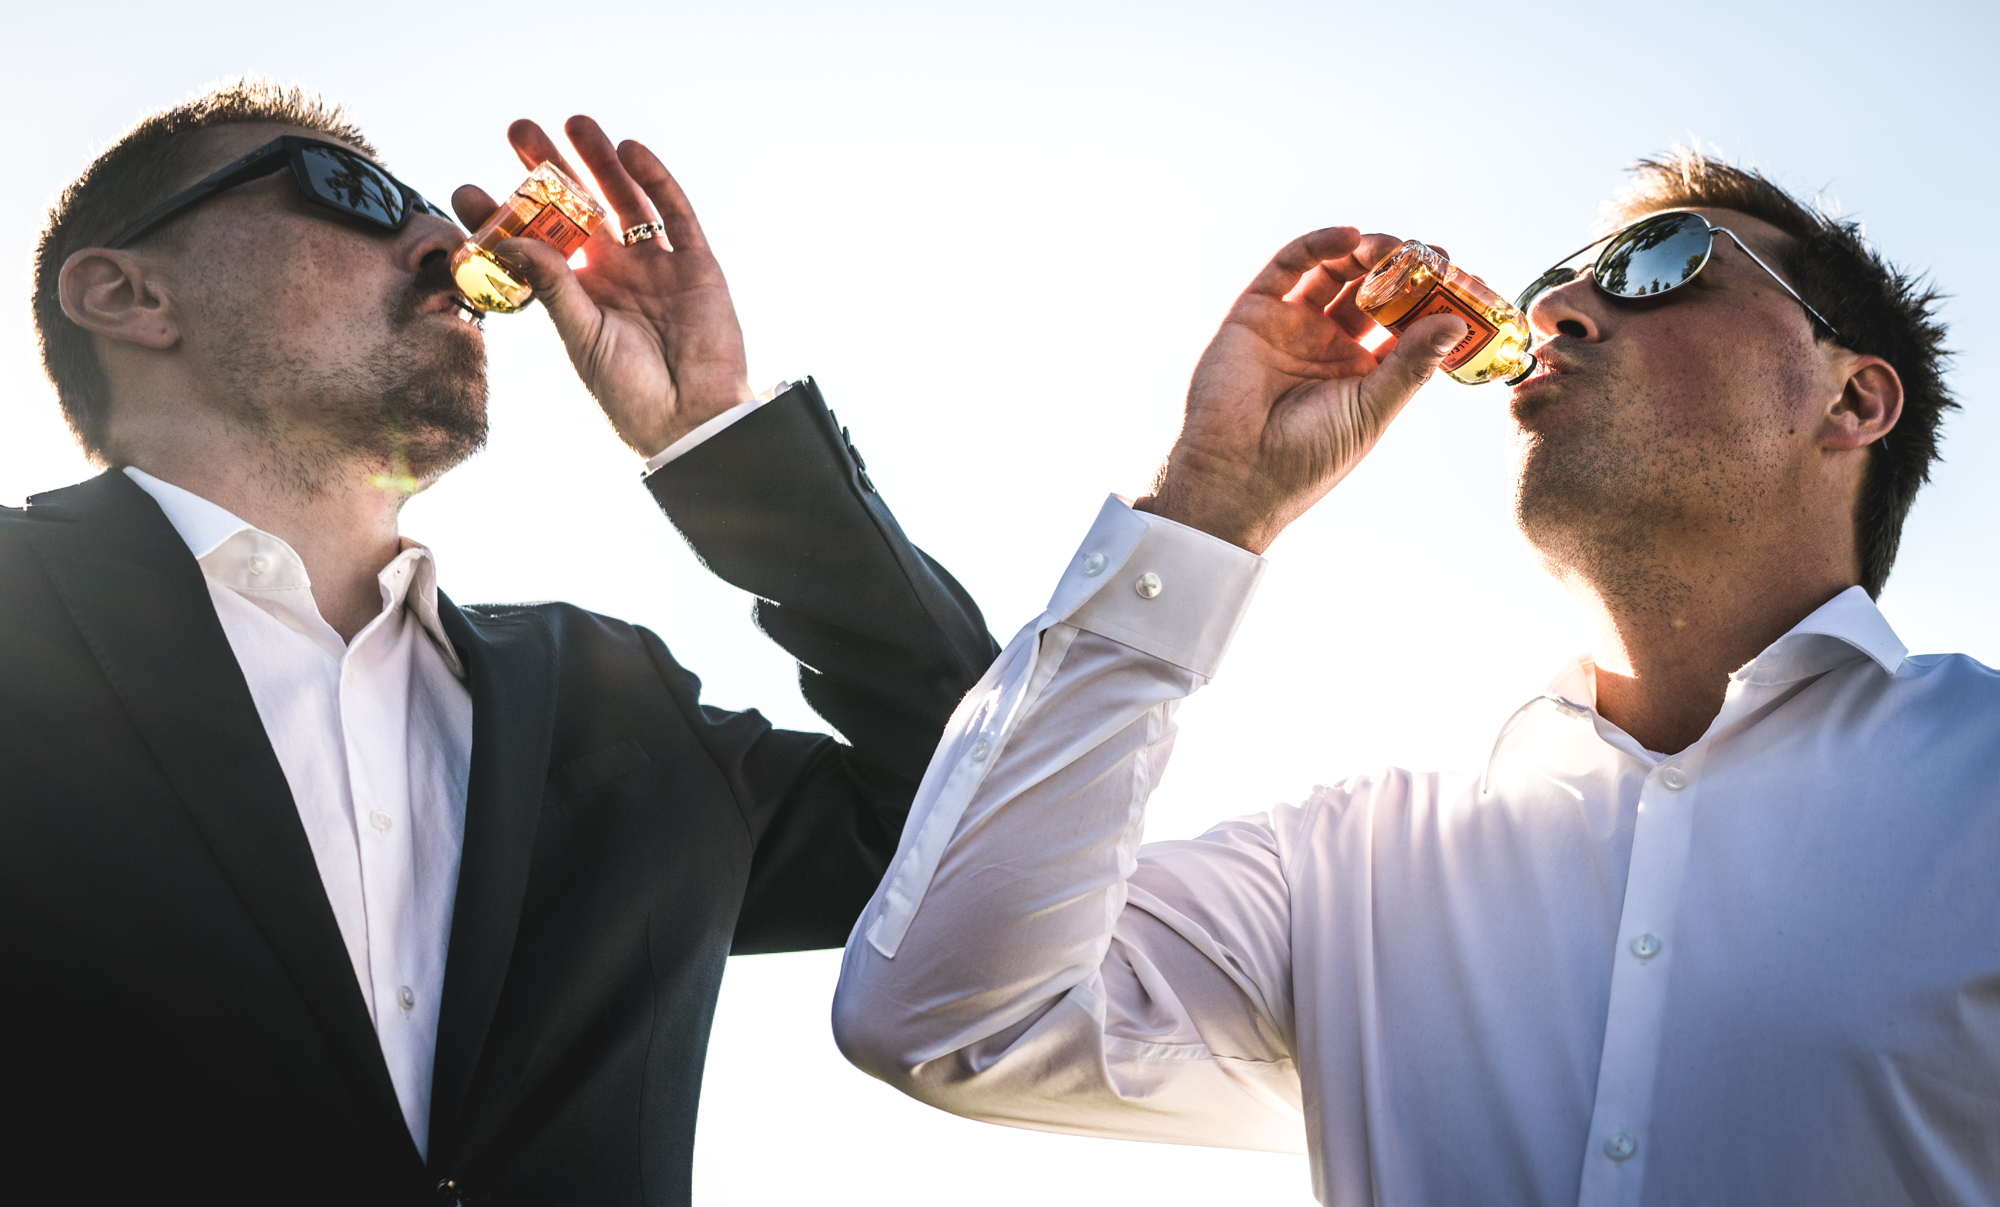 Groom and guest at a wedding take shots of Fireball